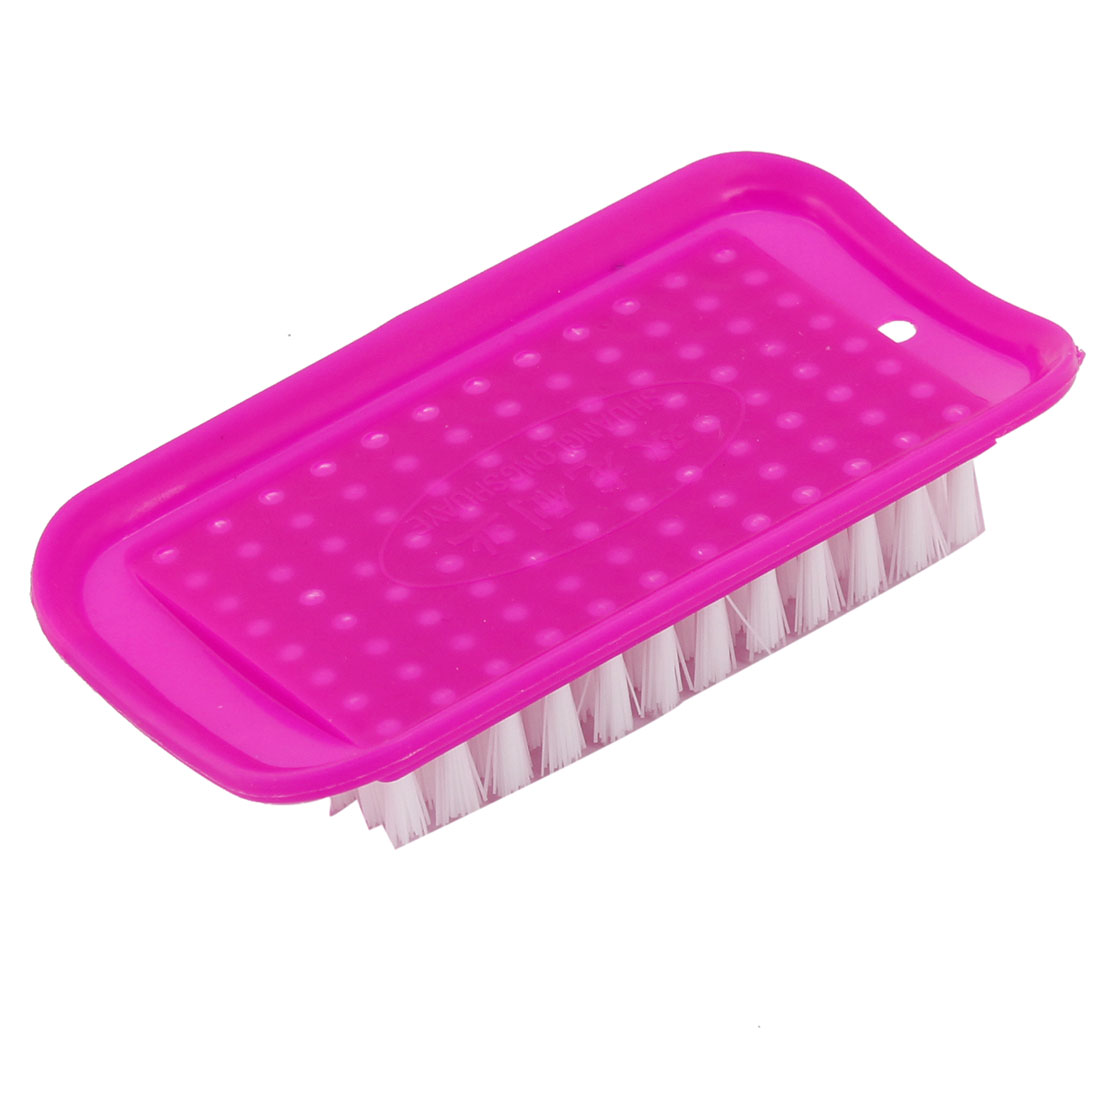 Fuchsia Rectangle Shaped Plastic Household Laundry Brush